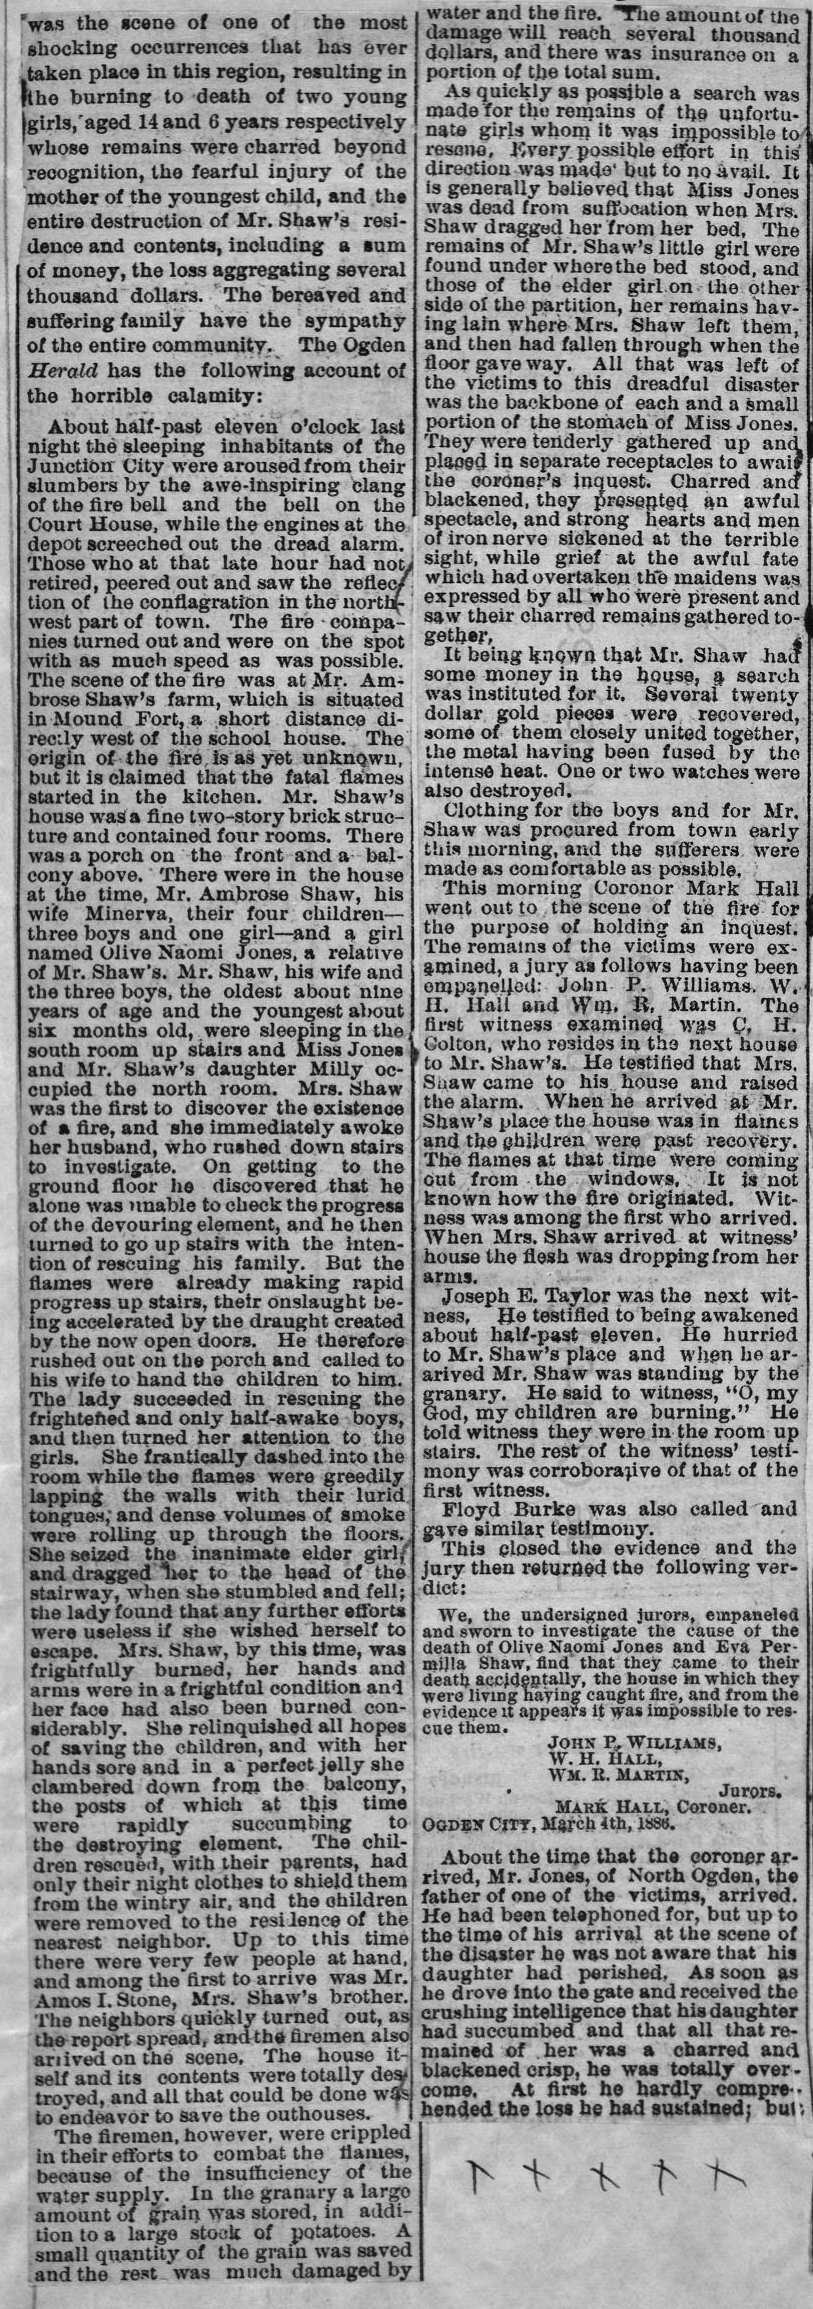 1886 Desseret News account of fire at Ambrose Shaw home